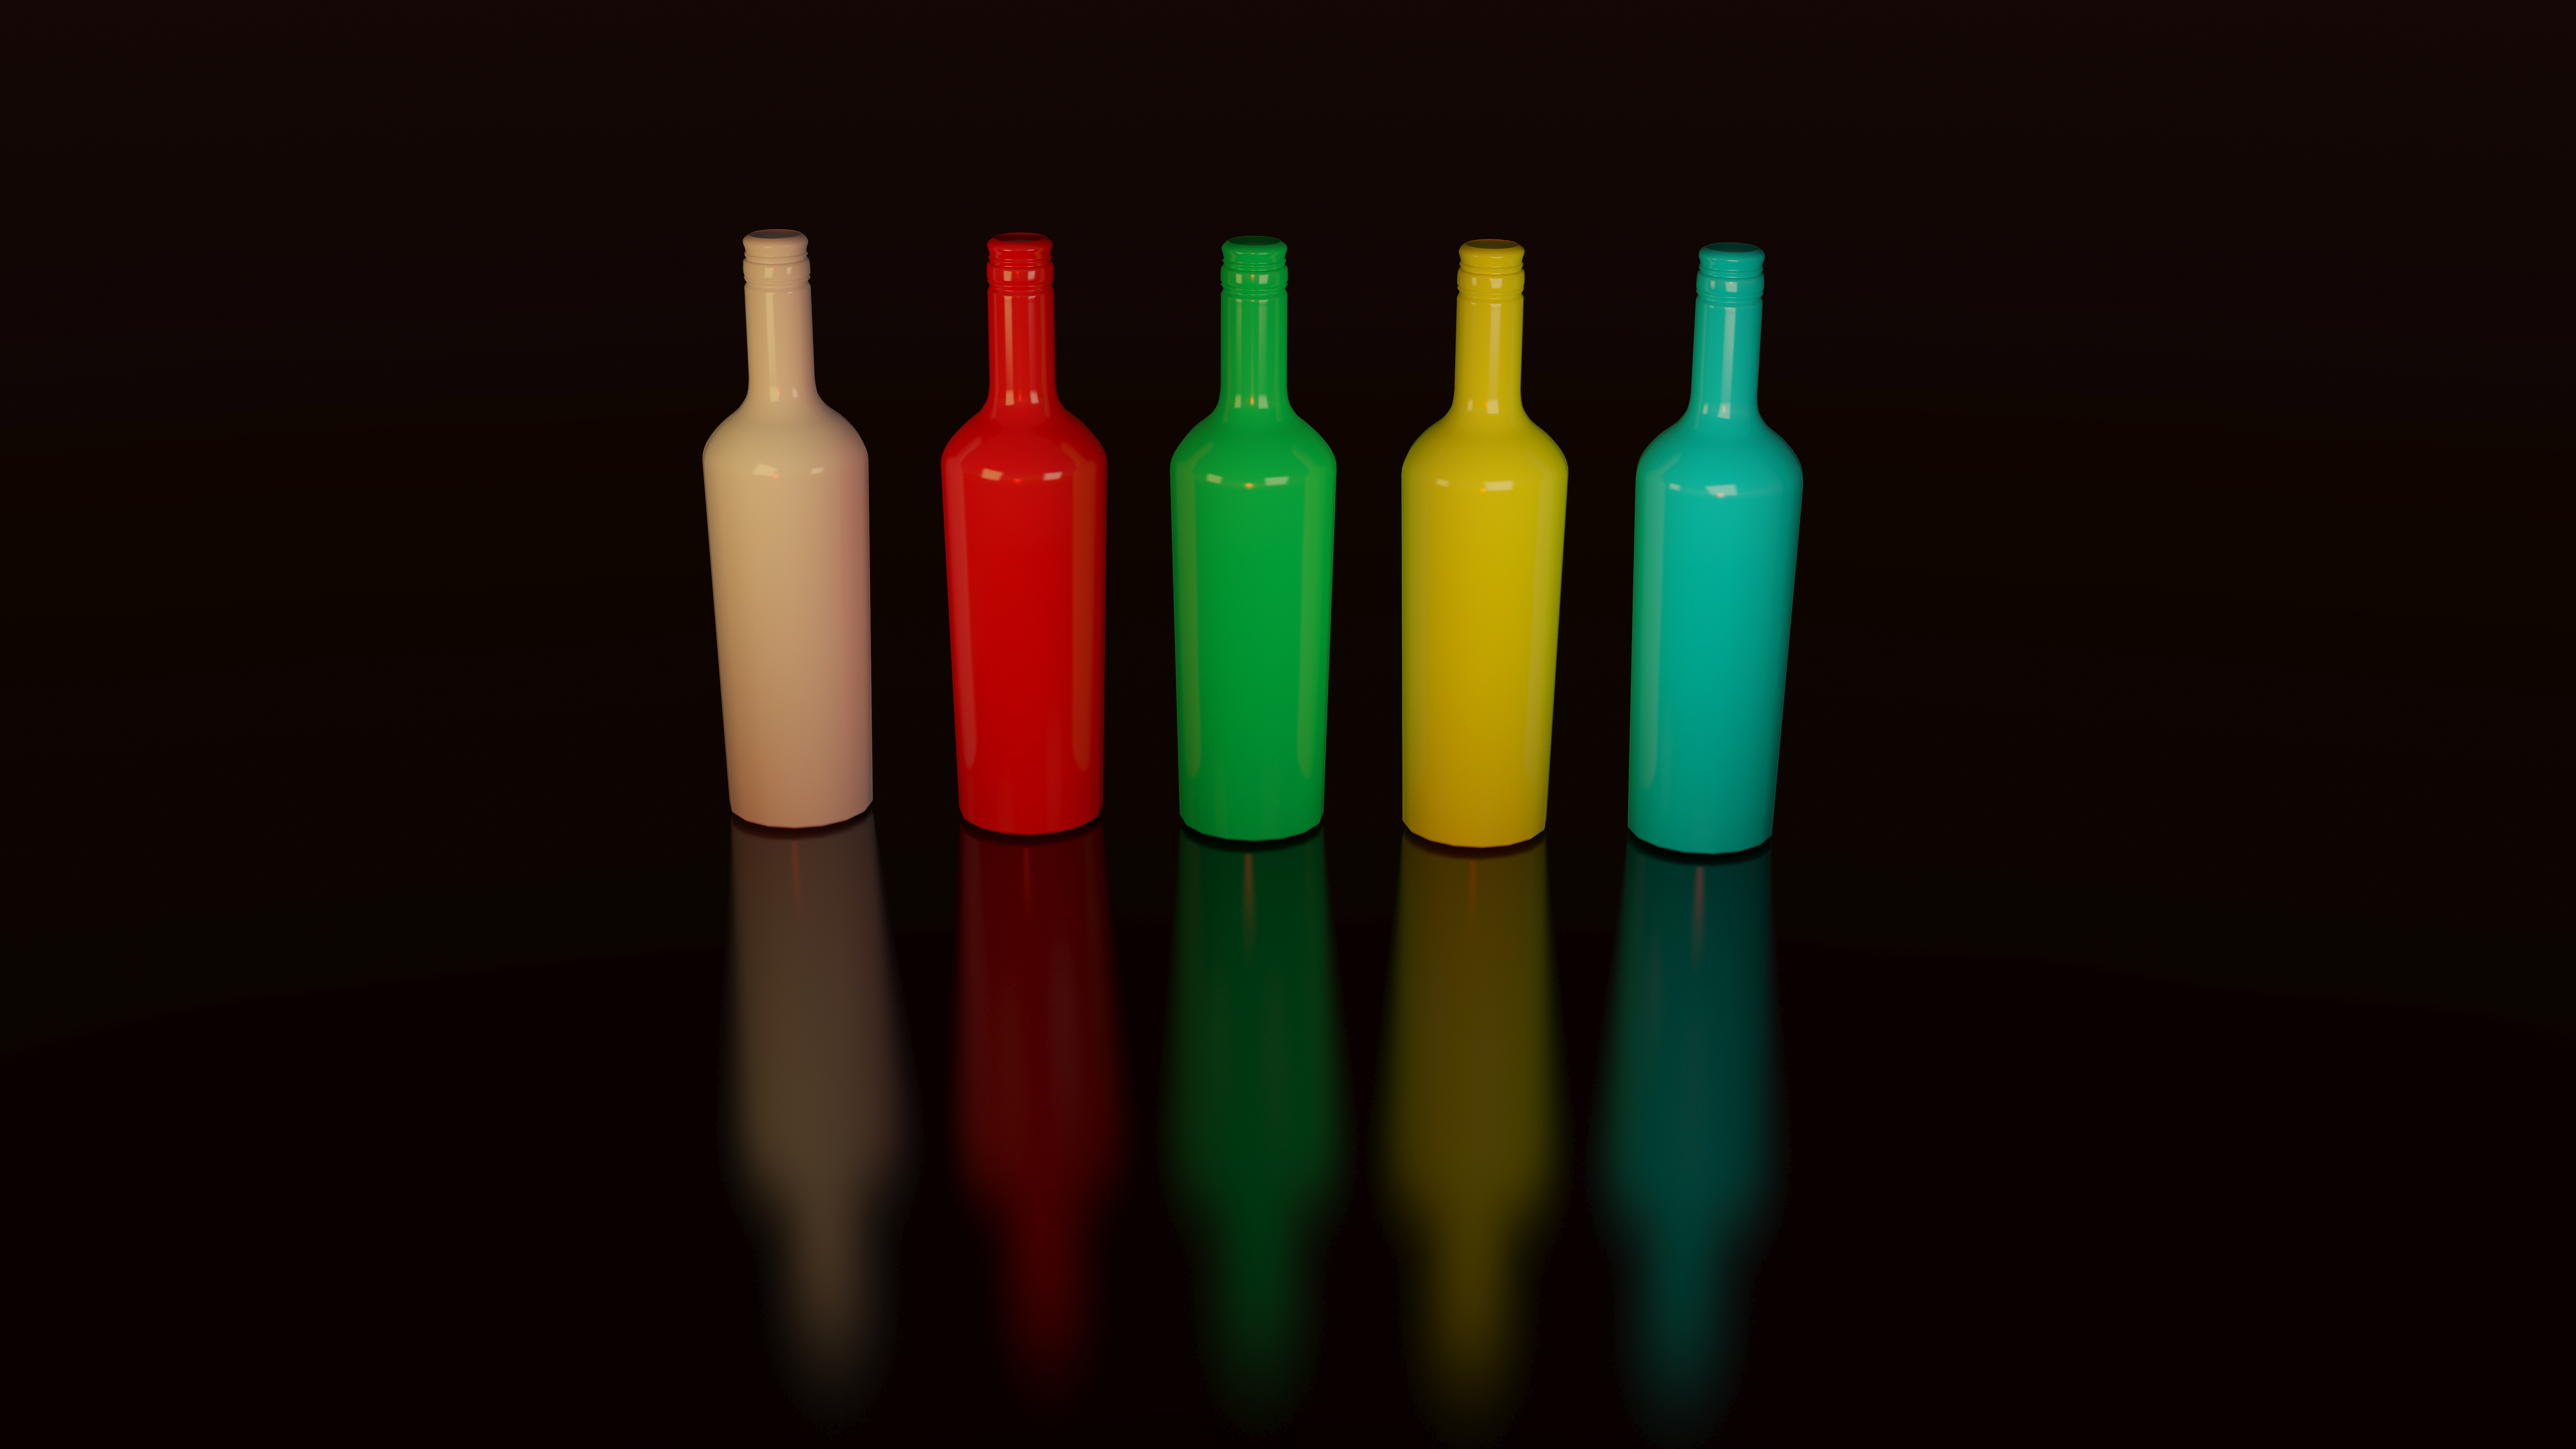 Free stock photo of art, bottles, colorful, colourful